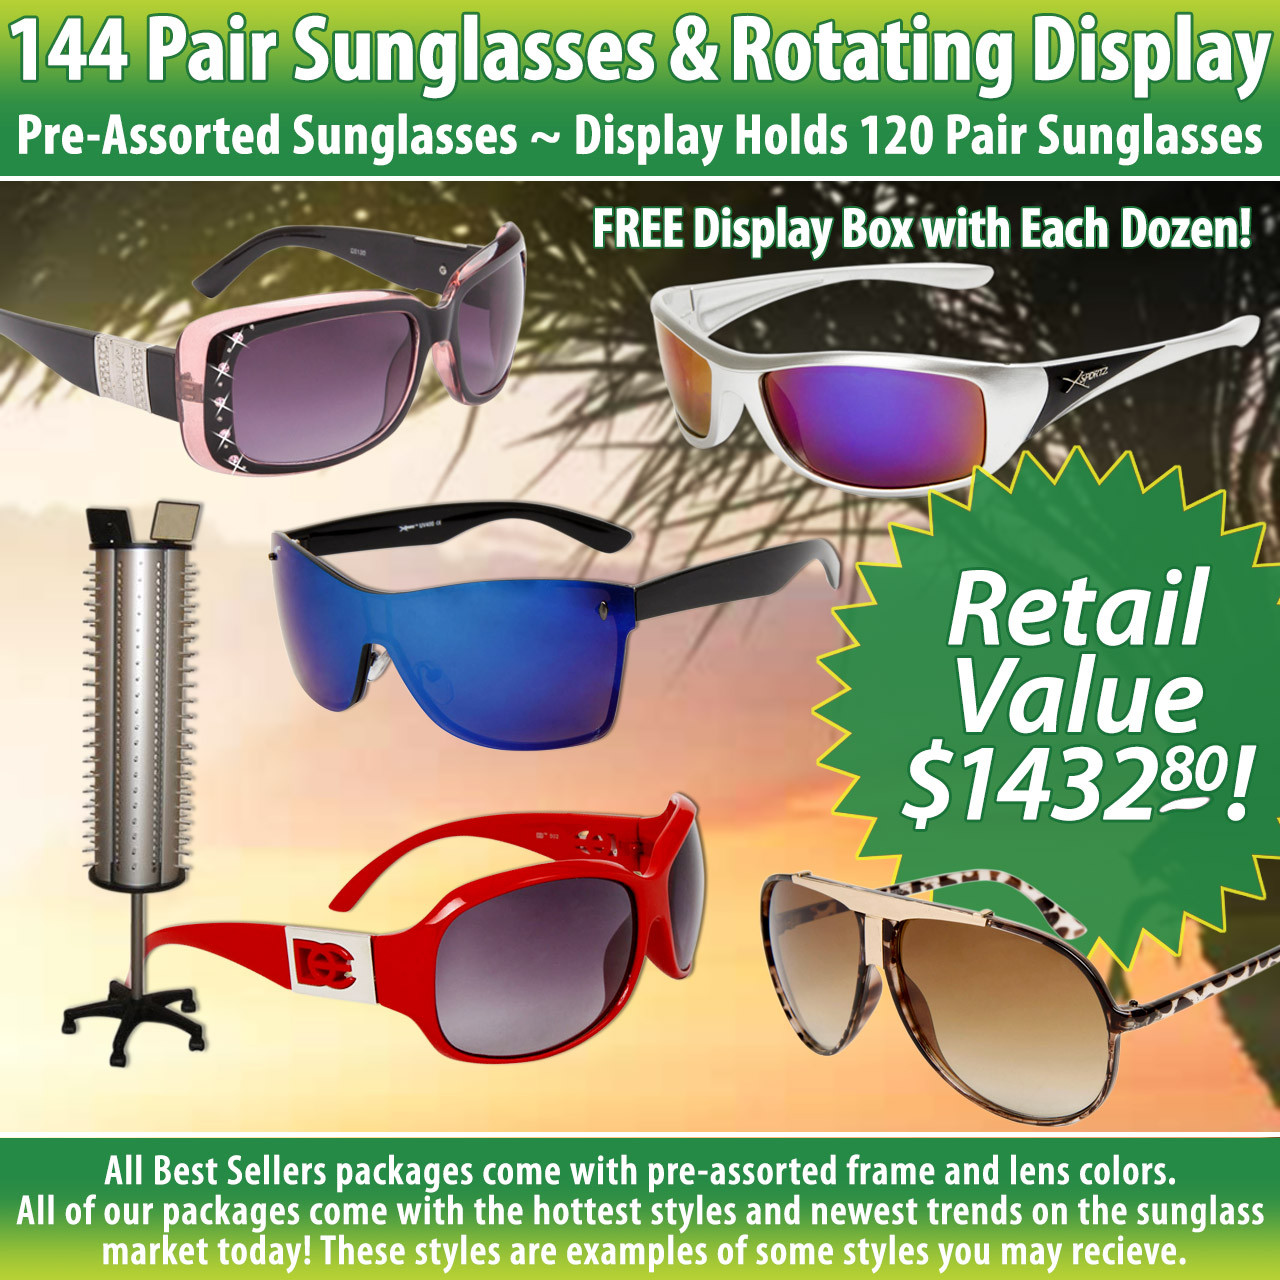 Package Deal 144 Pair Sunglasses & Rotating Floor Model Display SPA13 (12 dzn.+D007) Display Holds 120 Pair (Assorted Colors)